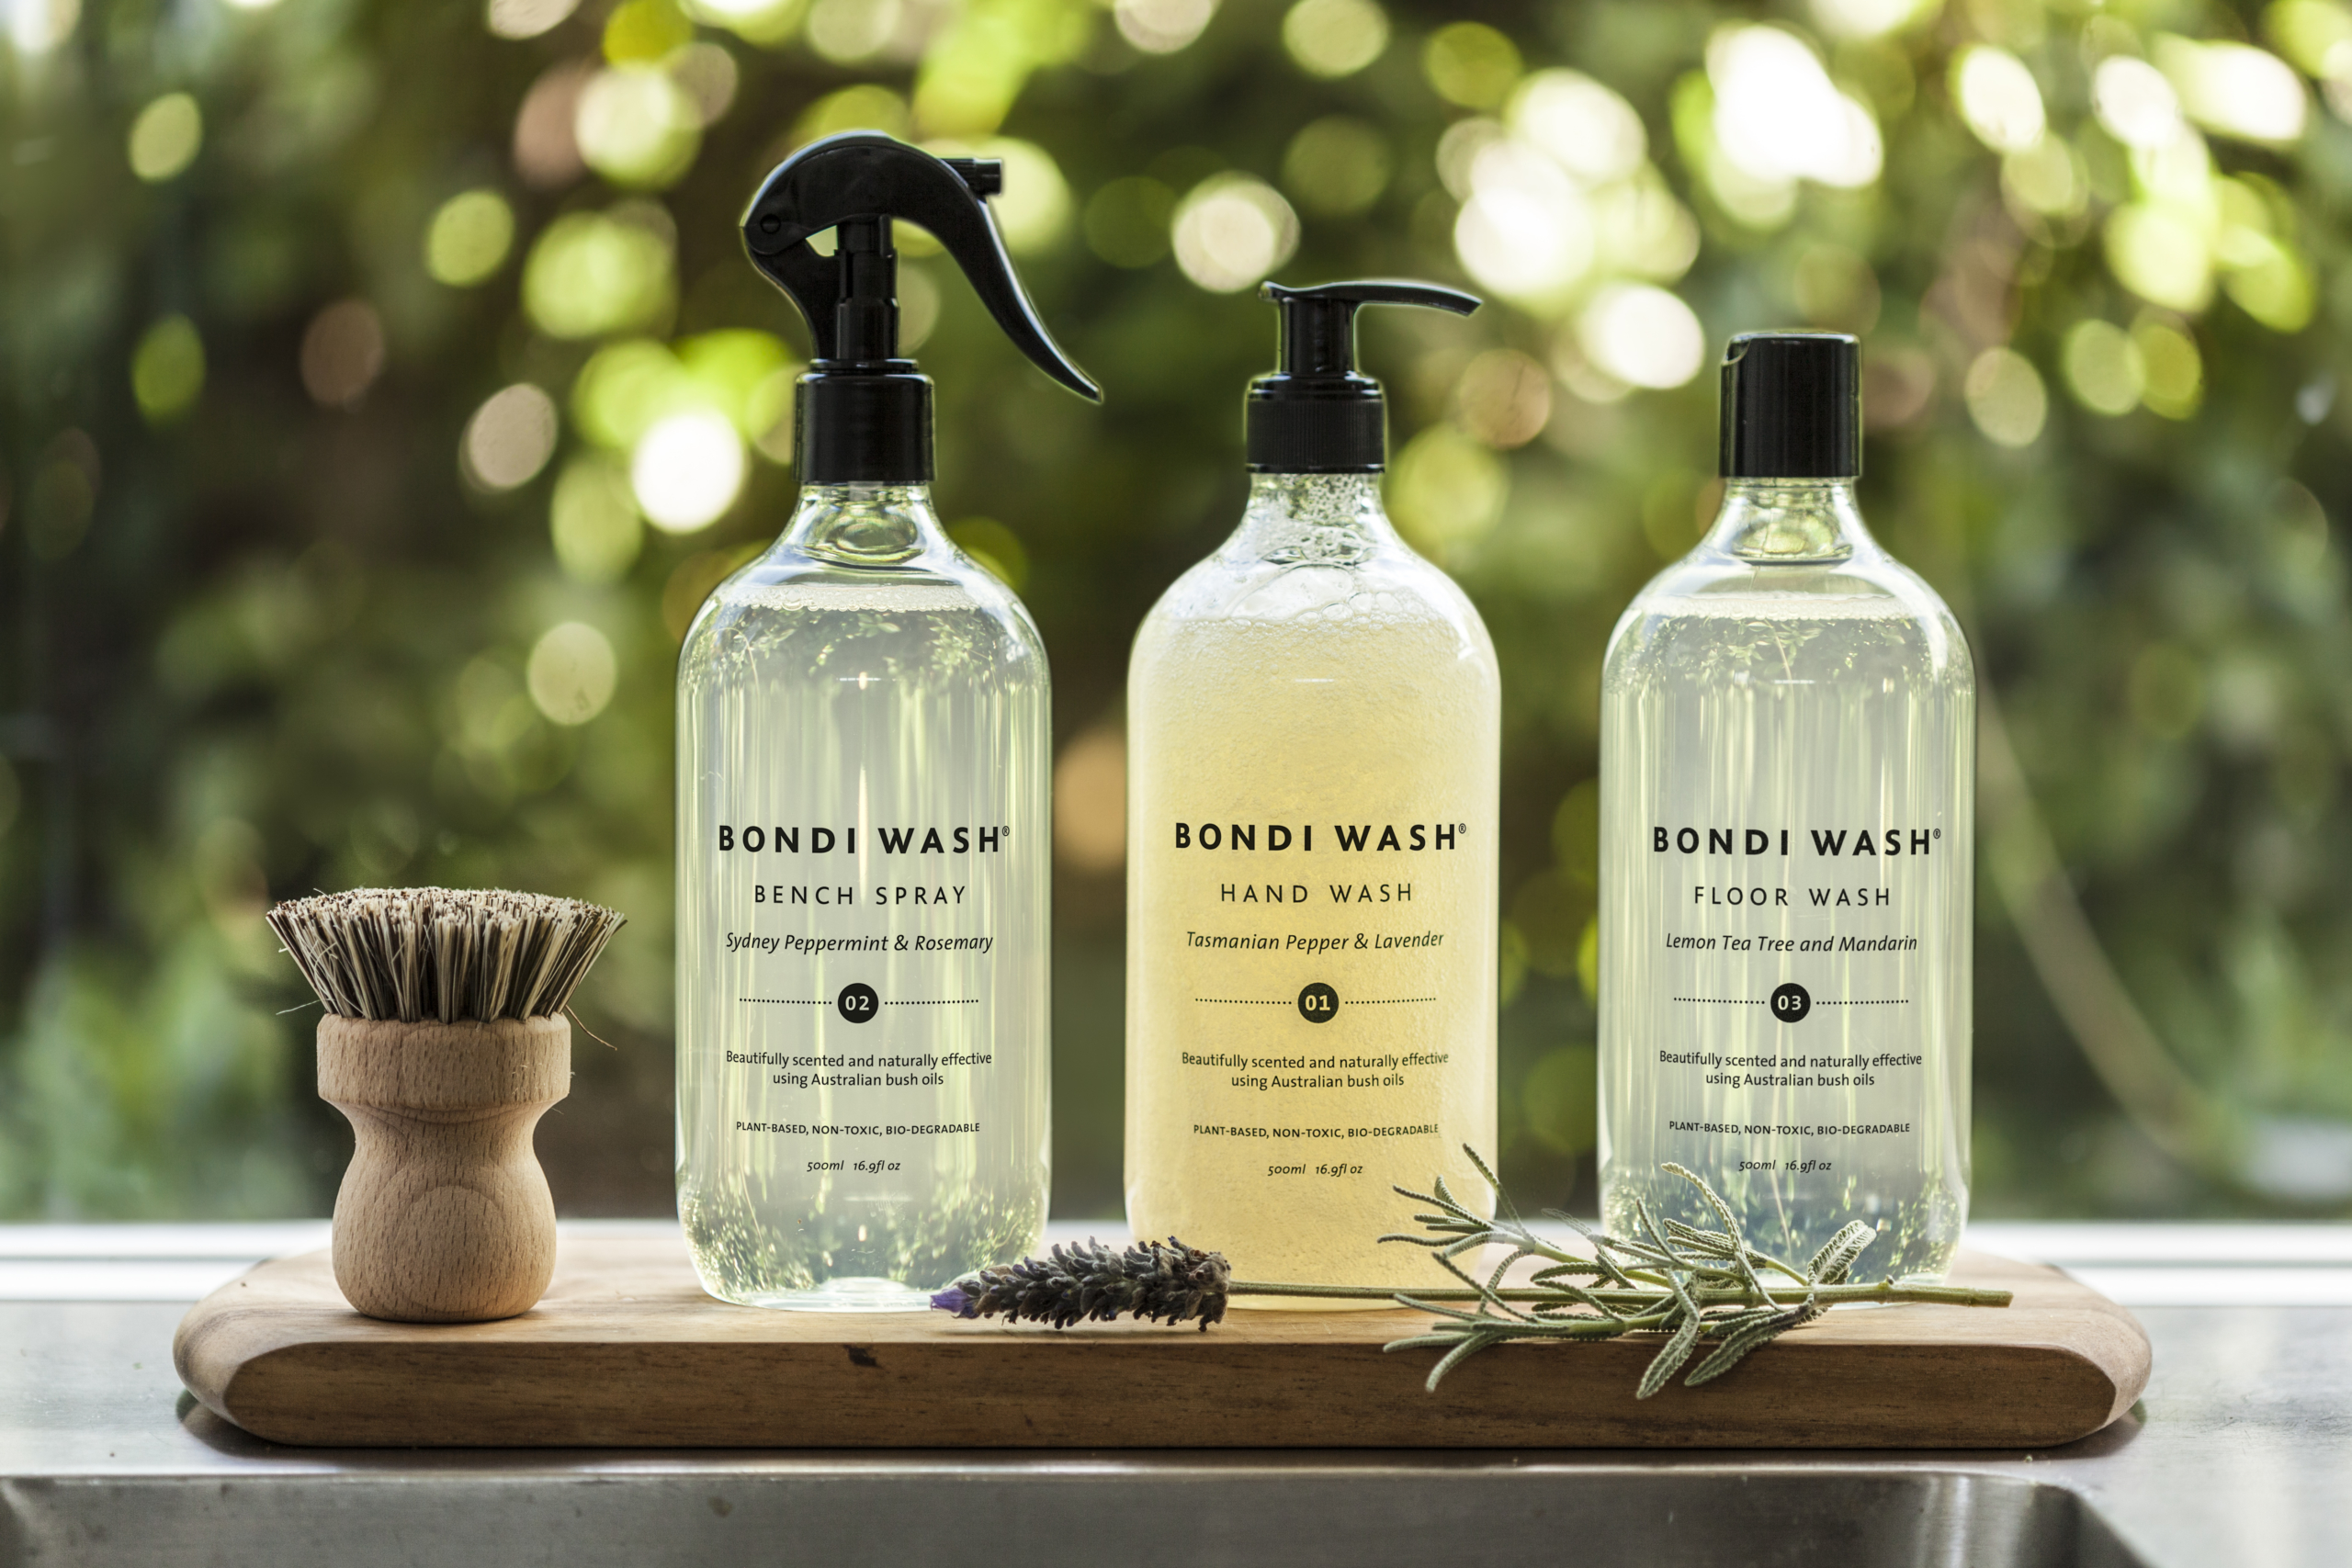 Bondi Wash – Australia's best